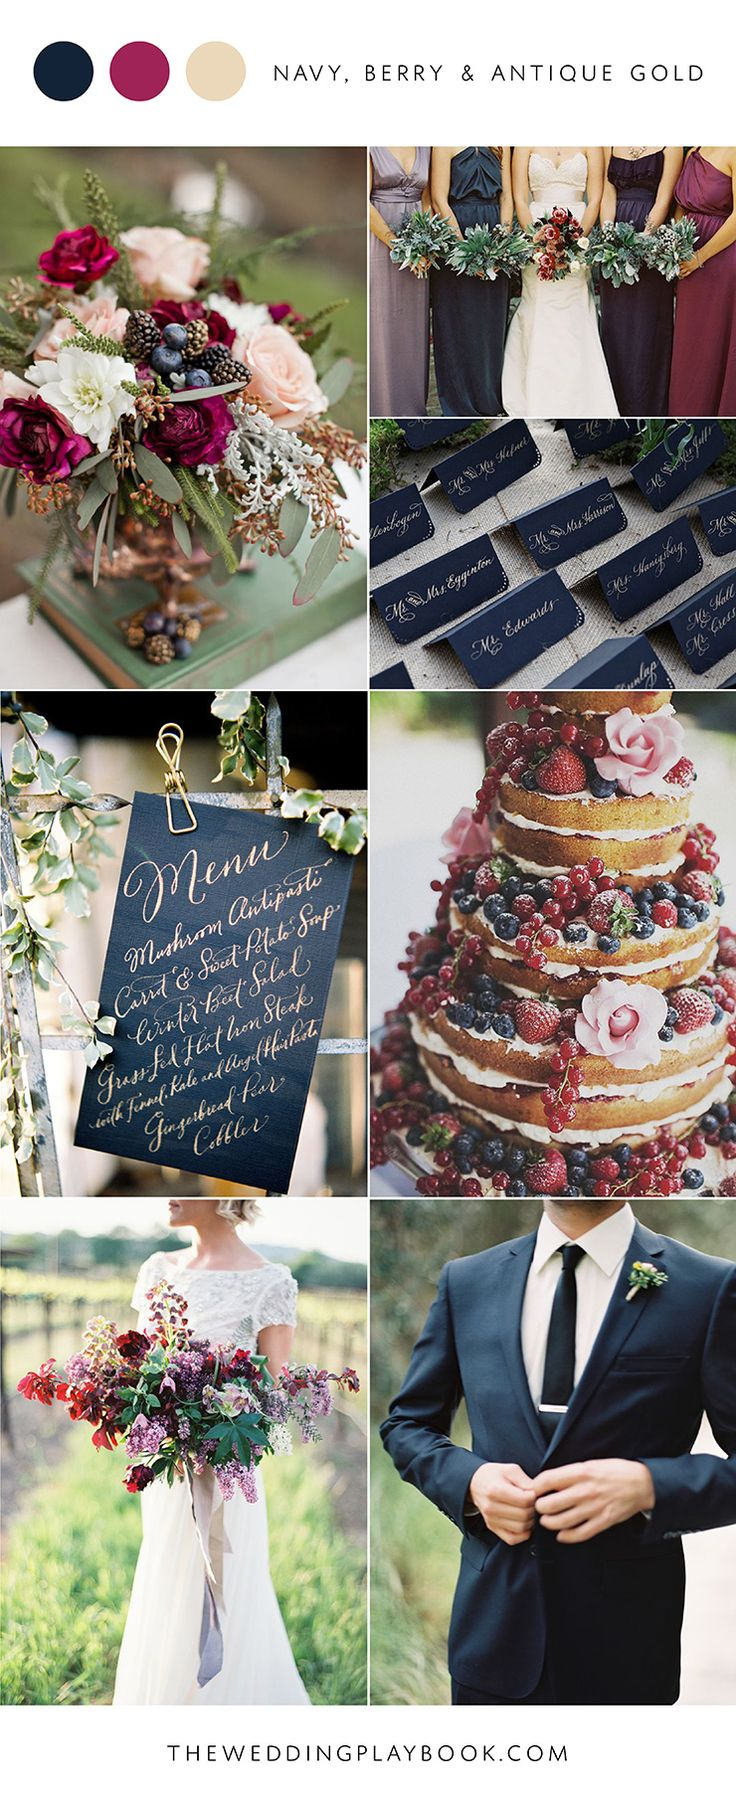 Navy, berry and antique gold wedding inspiration | See more: http://theweddingplaybook.com/a-bloggers-dream-wedding/